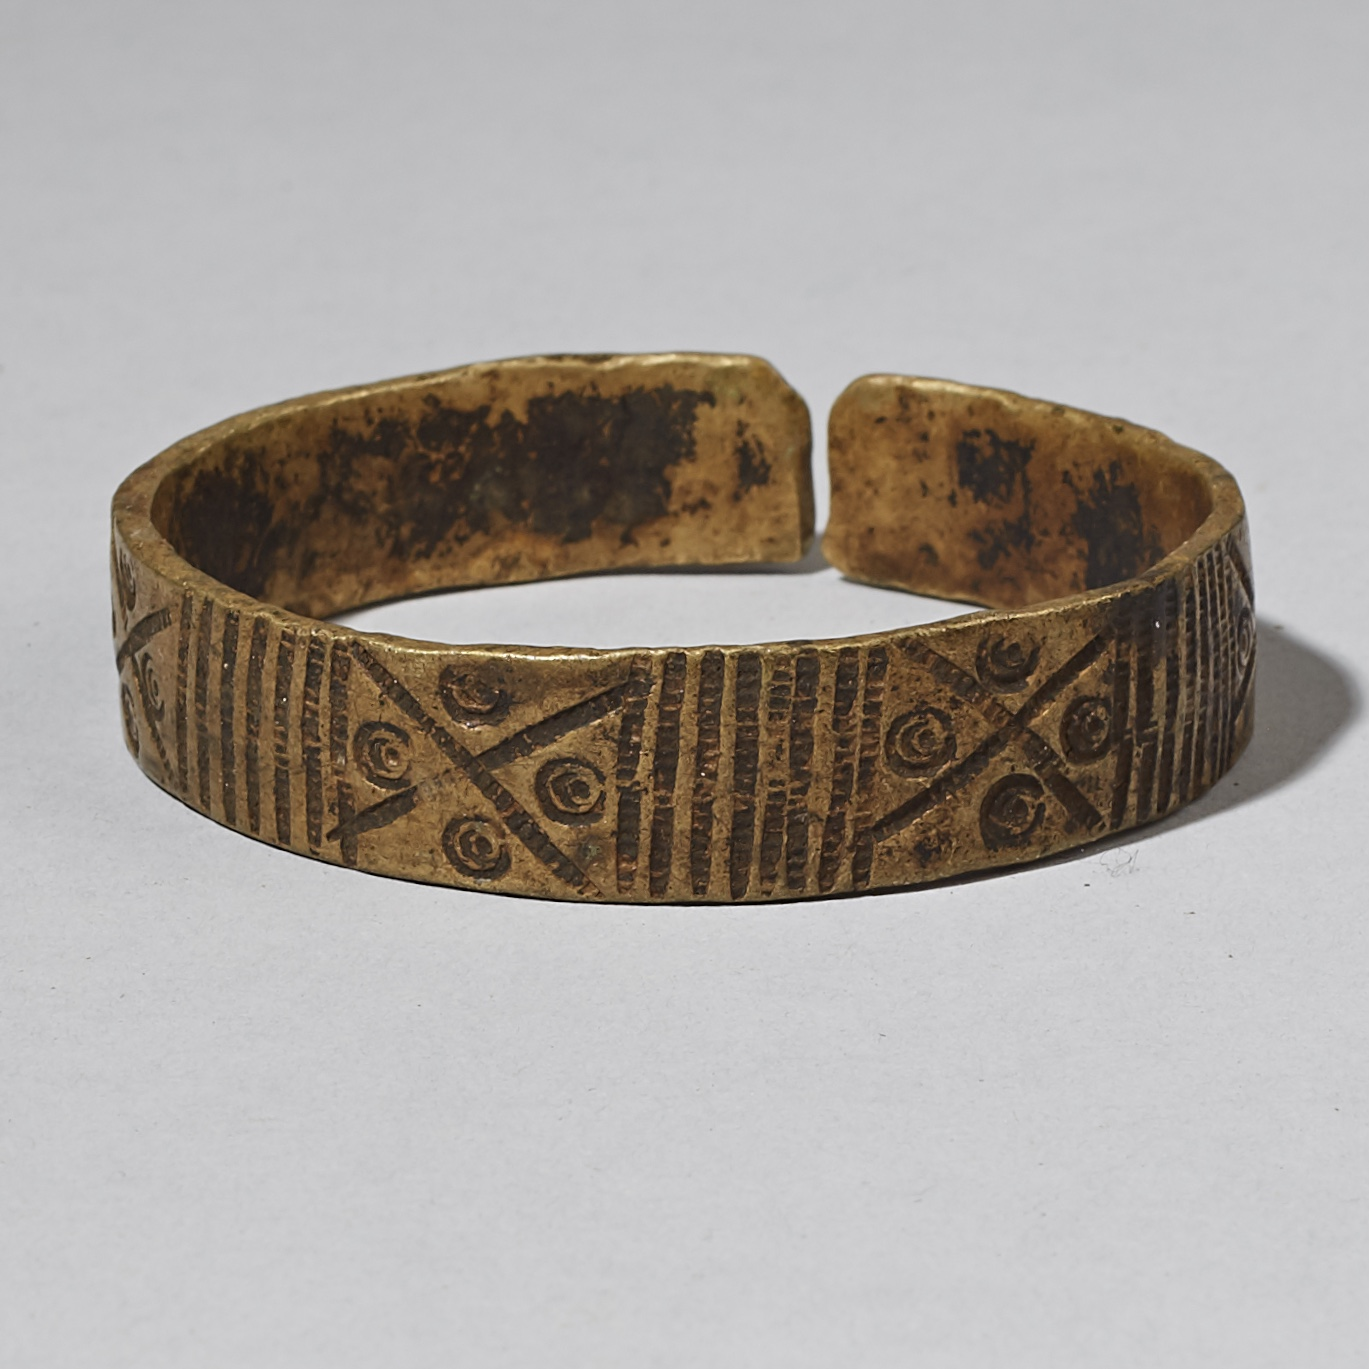 ( Sold Timtim )--A BRONZE BRACELET, HAUSA TRIBE OF NIGERIA ( No 3403 )